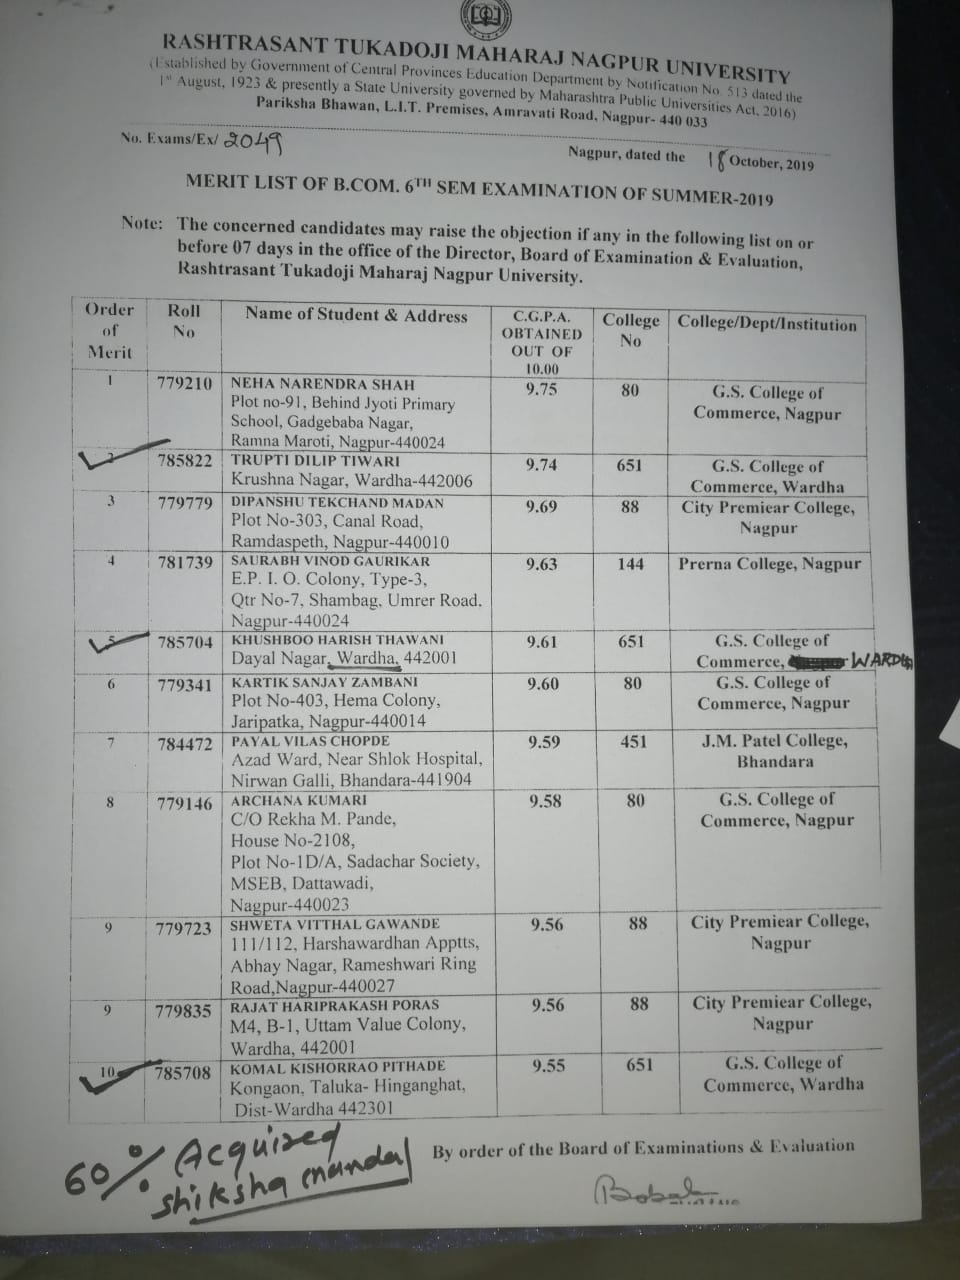 RTMNU Merit List of B.Com. 6th Sem Examination Summer 2019